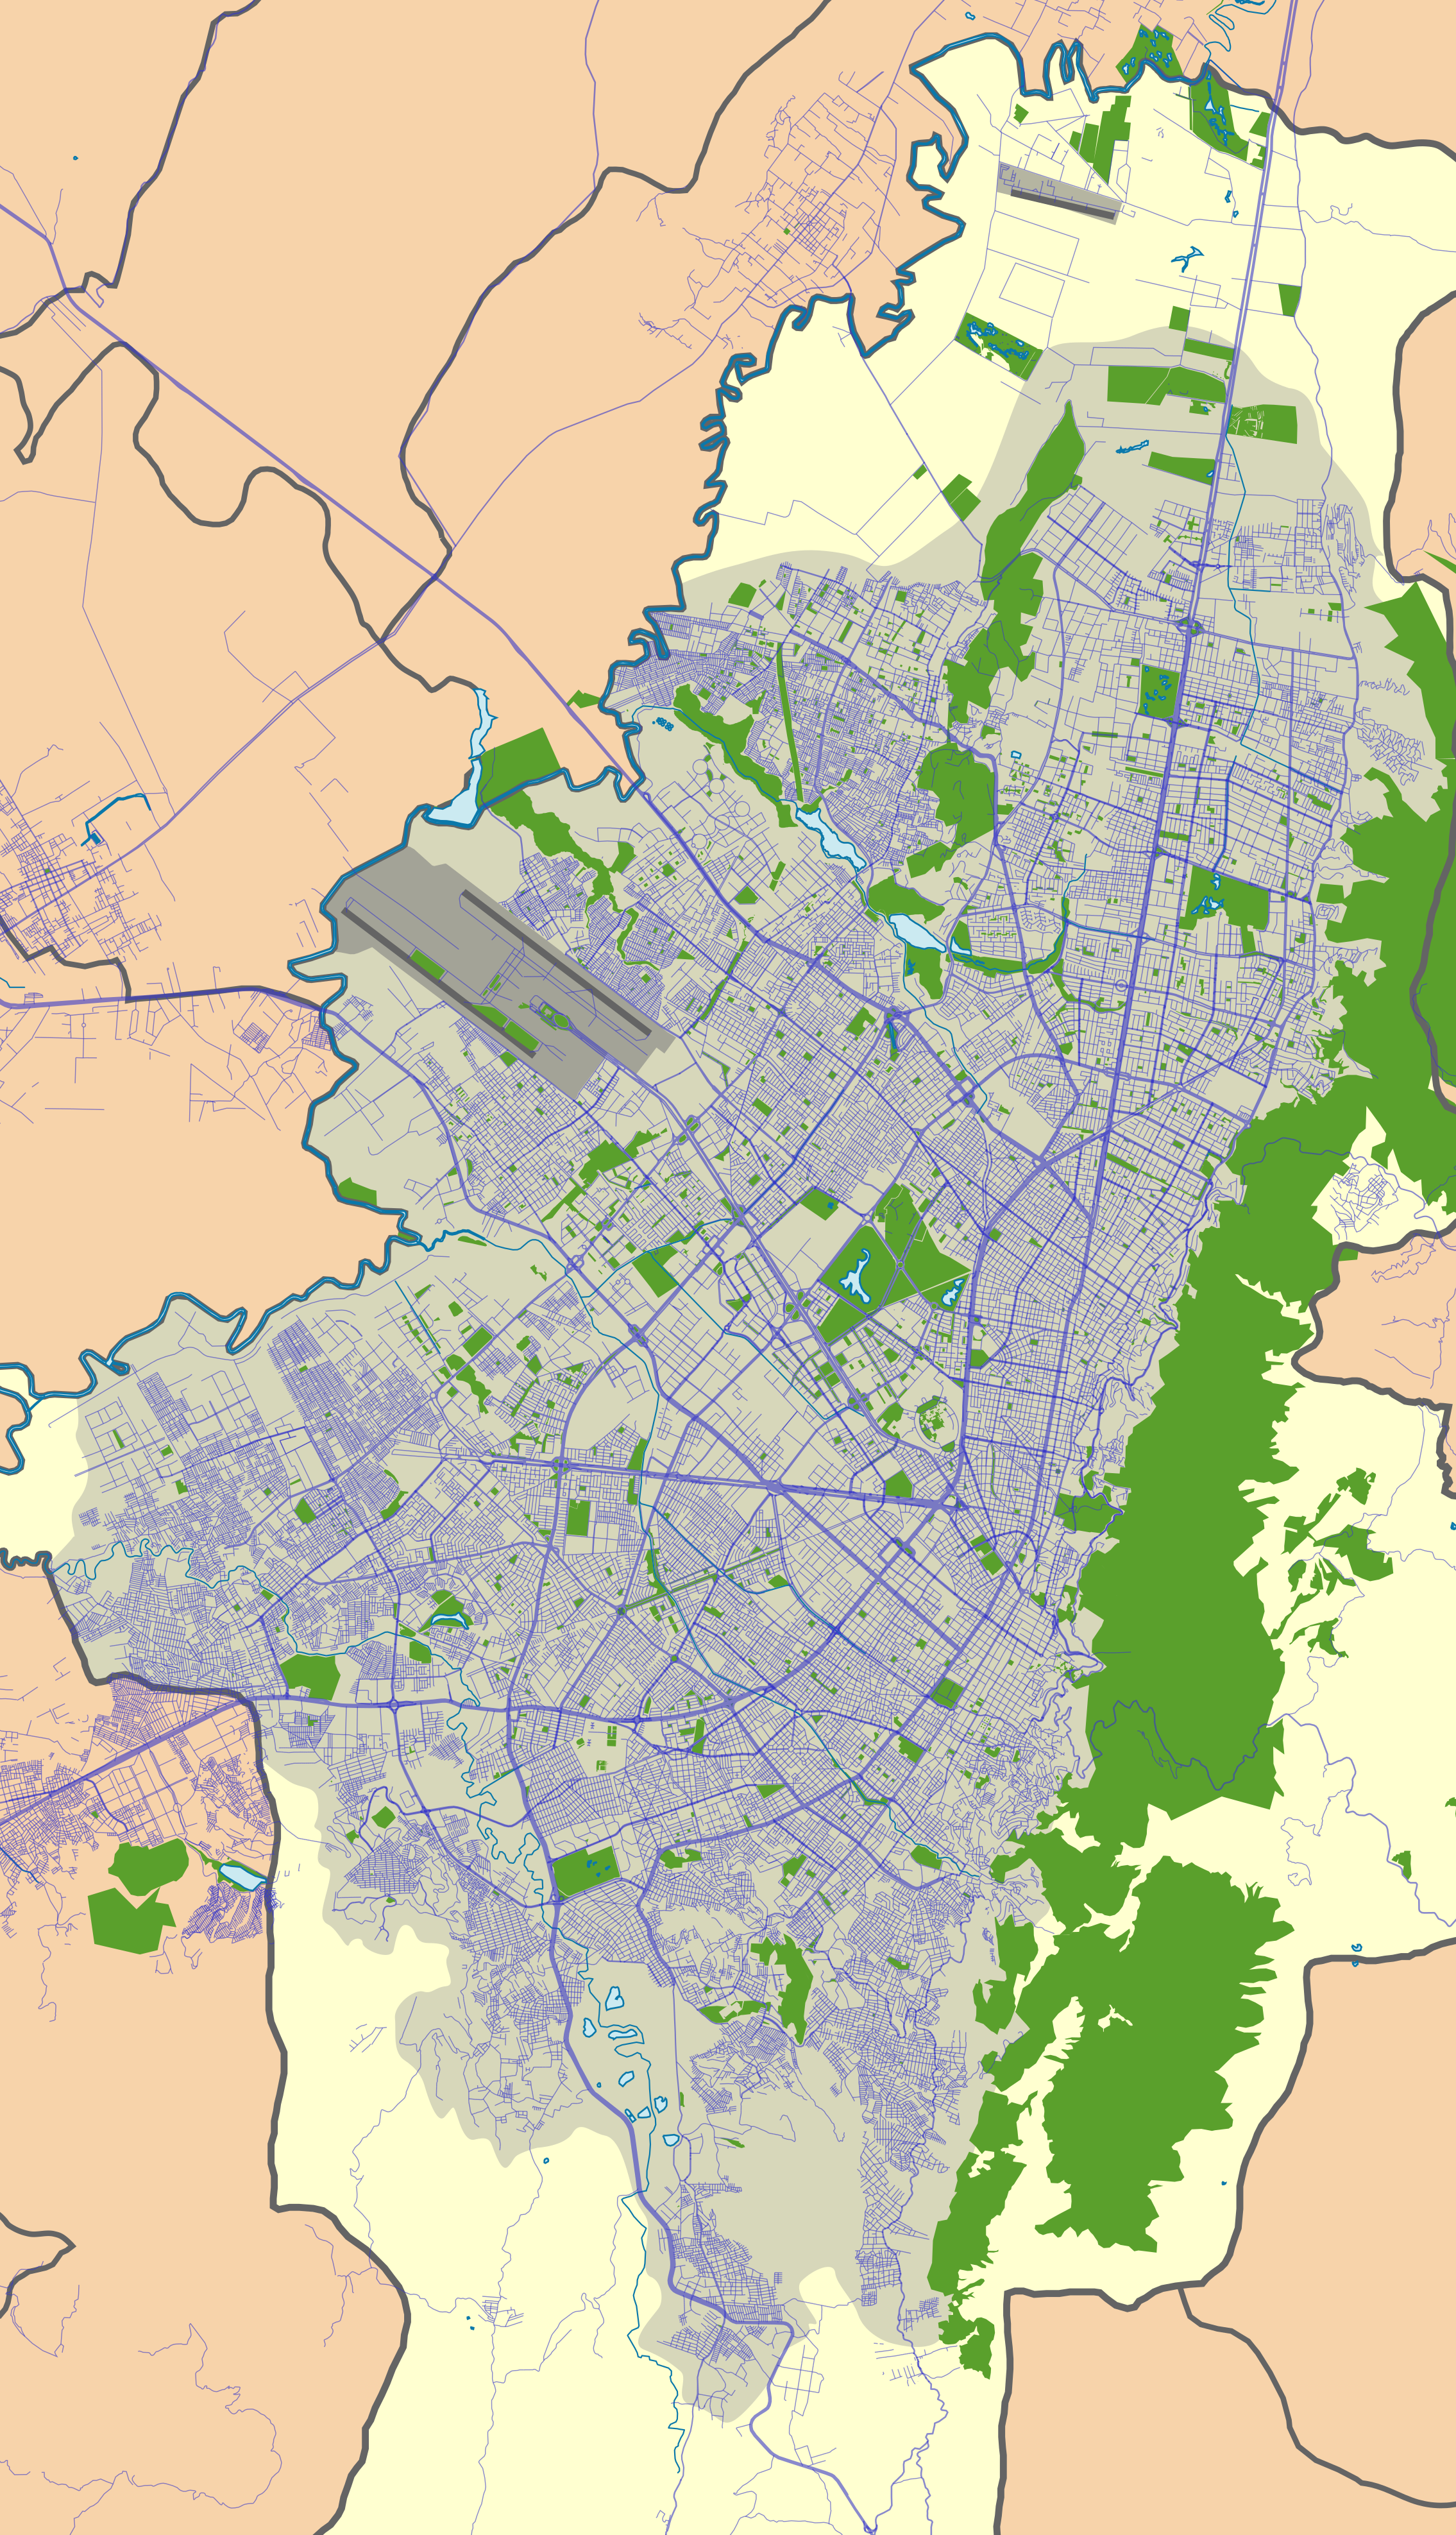 File:Colombia Bogotá location map.png - Wikipedia